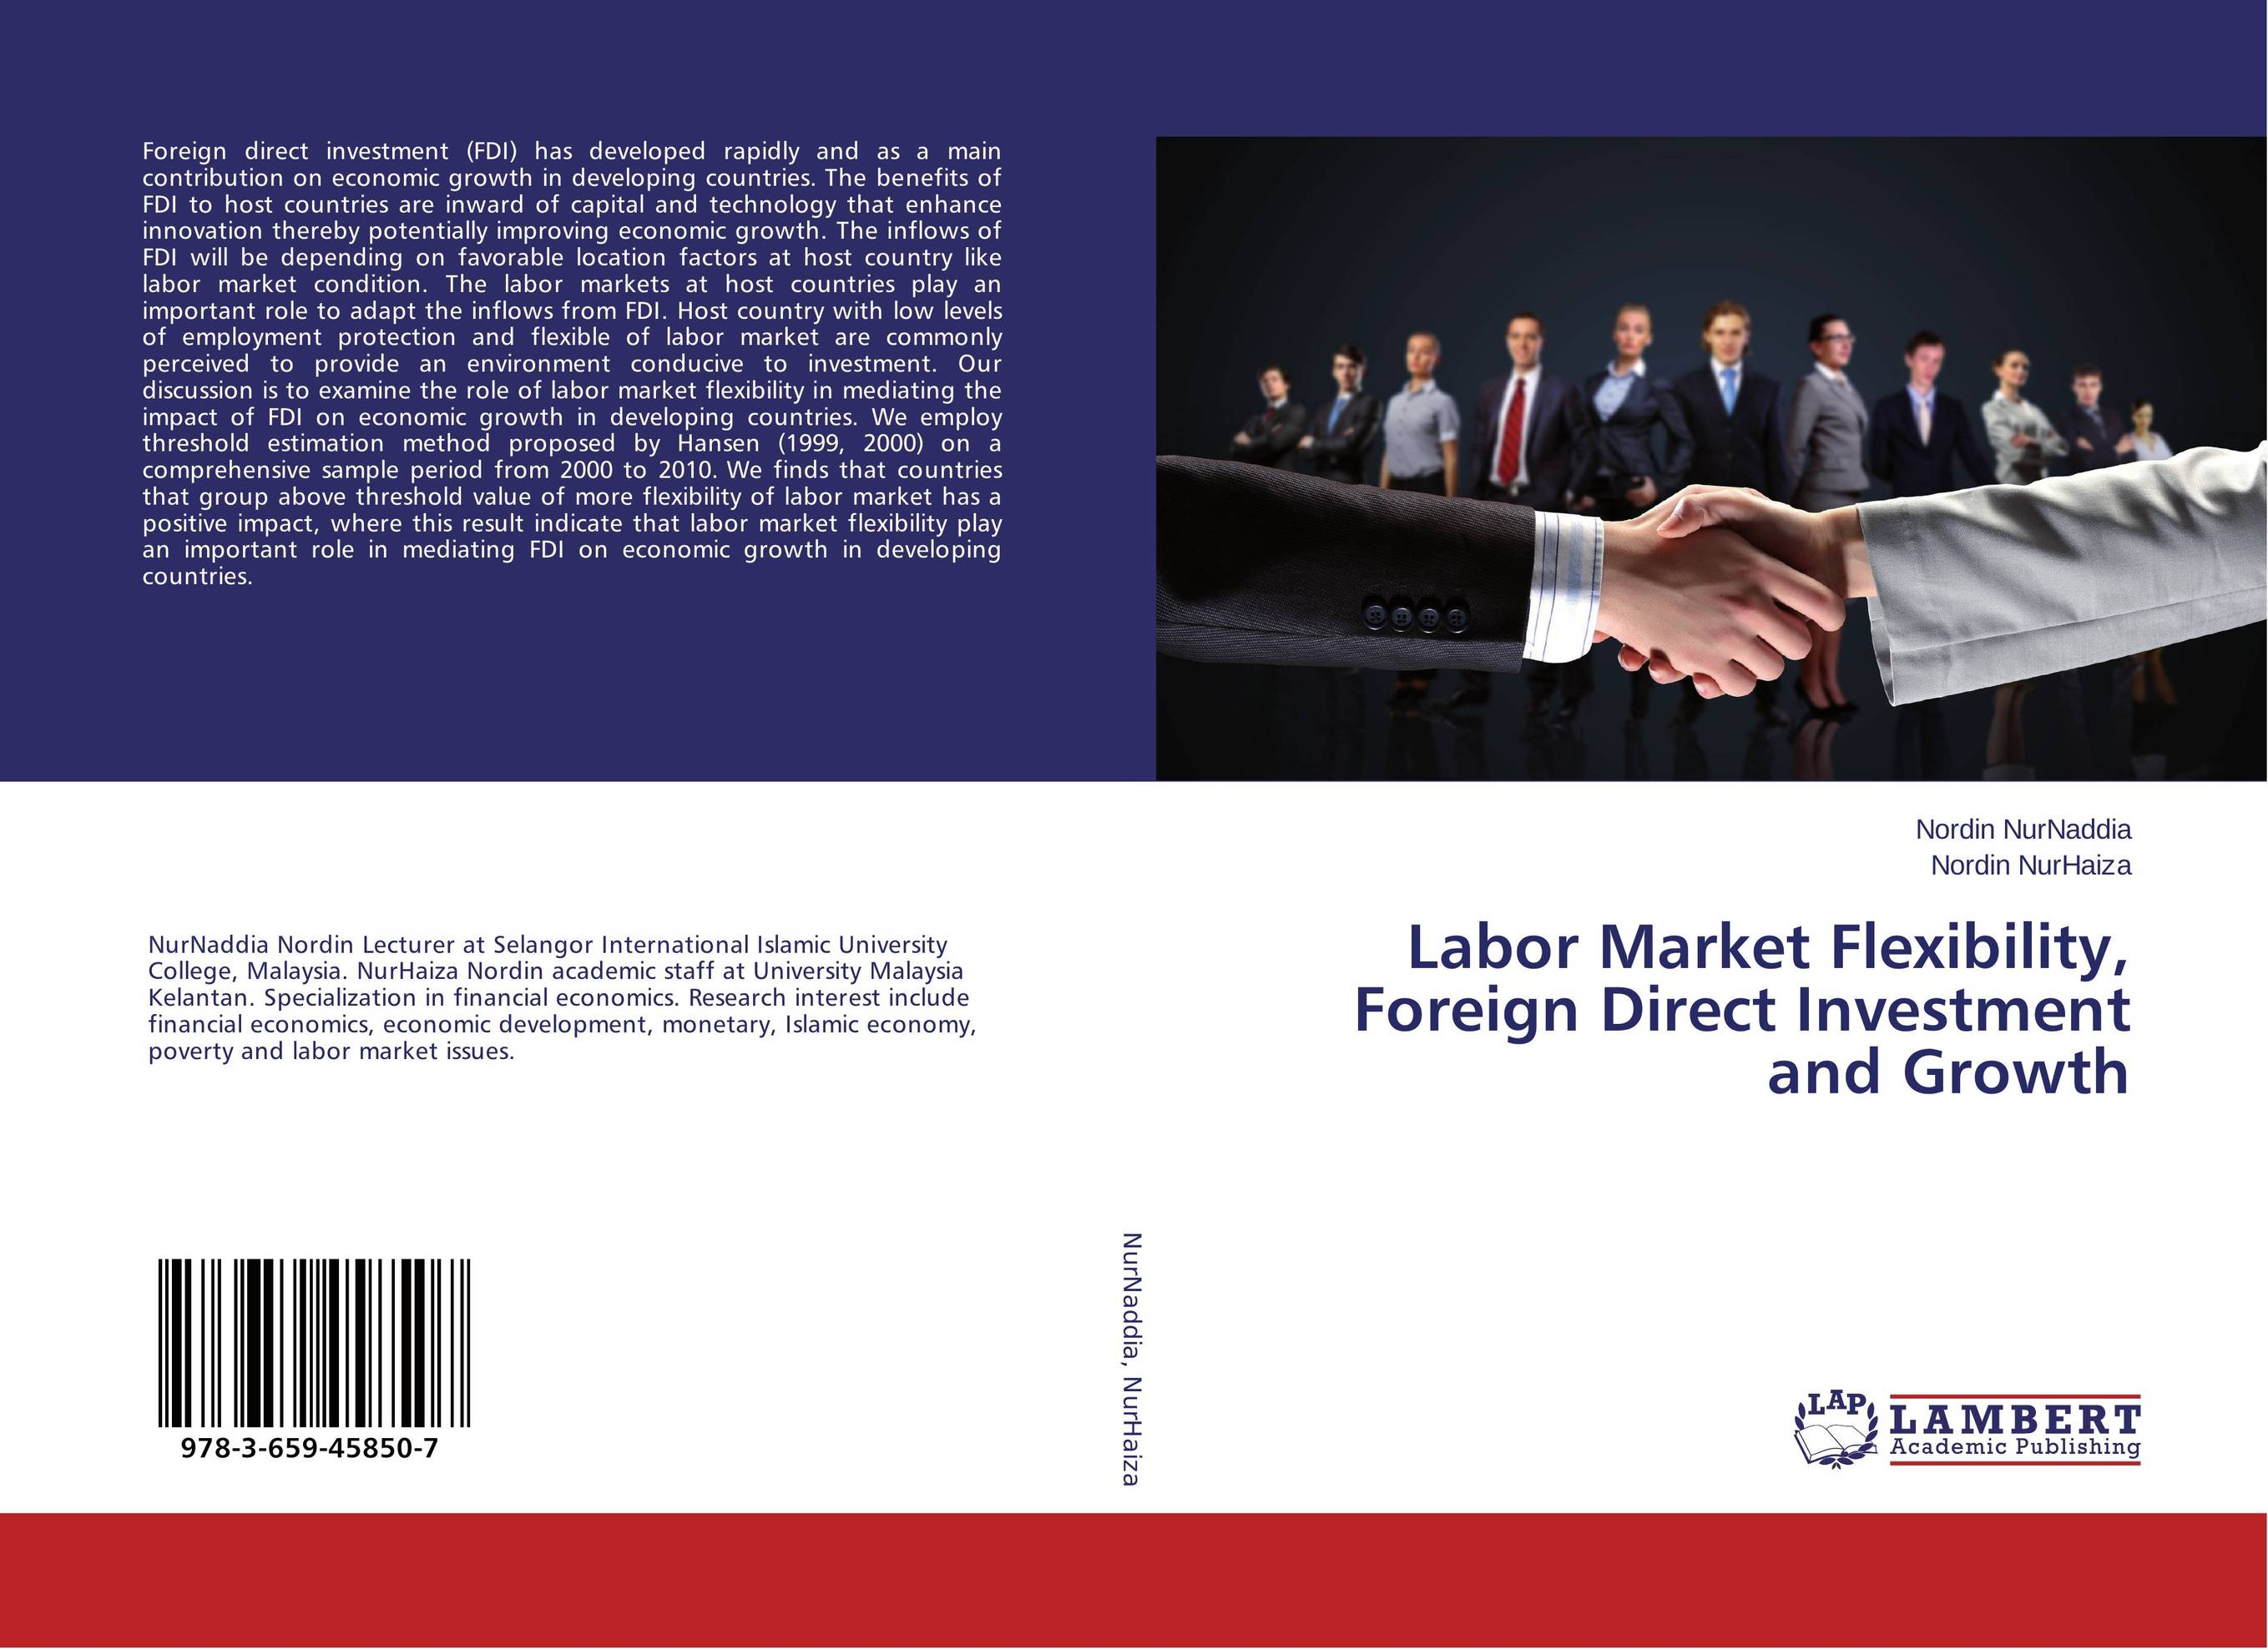 Labor Market Flexibility, Foreign Direct Investment and Growth impact of stock market performance indices on economic growth